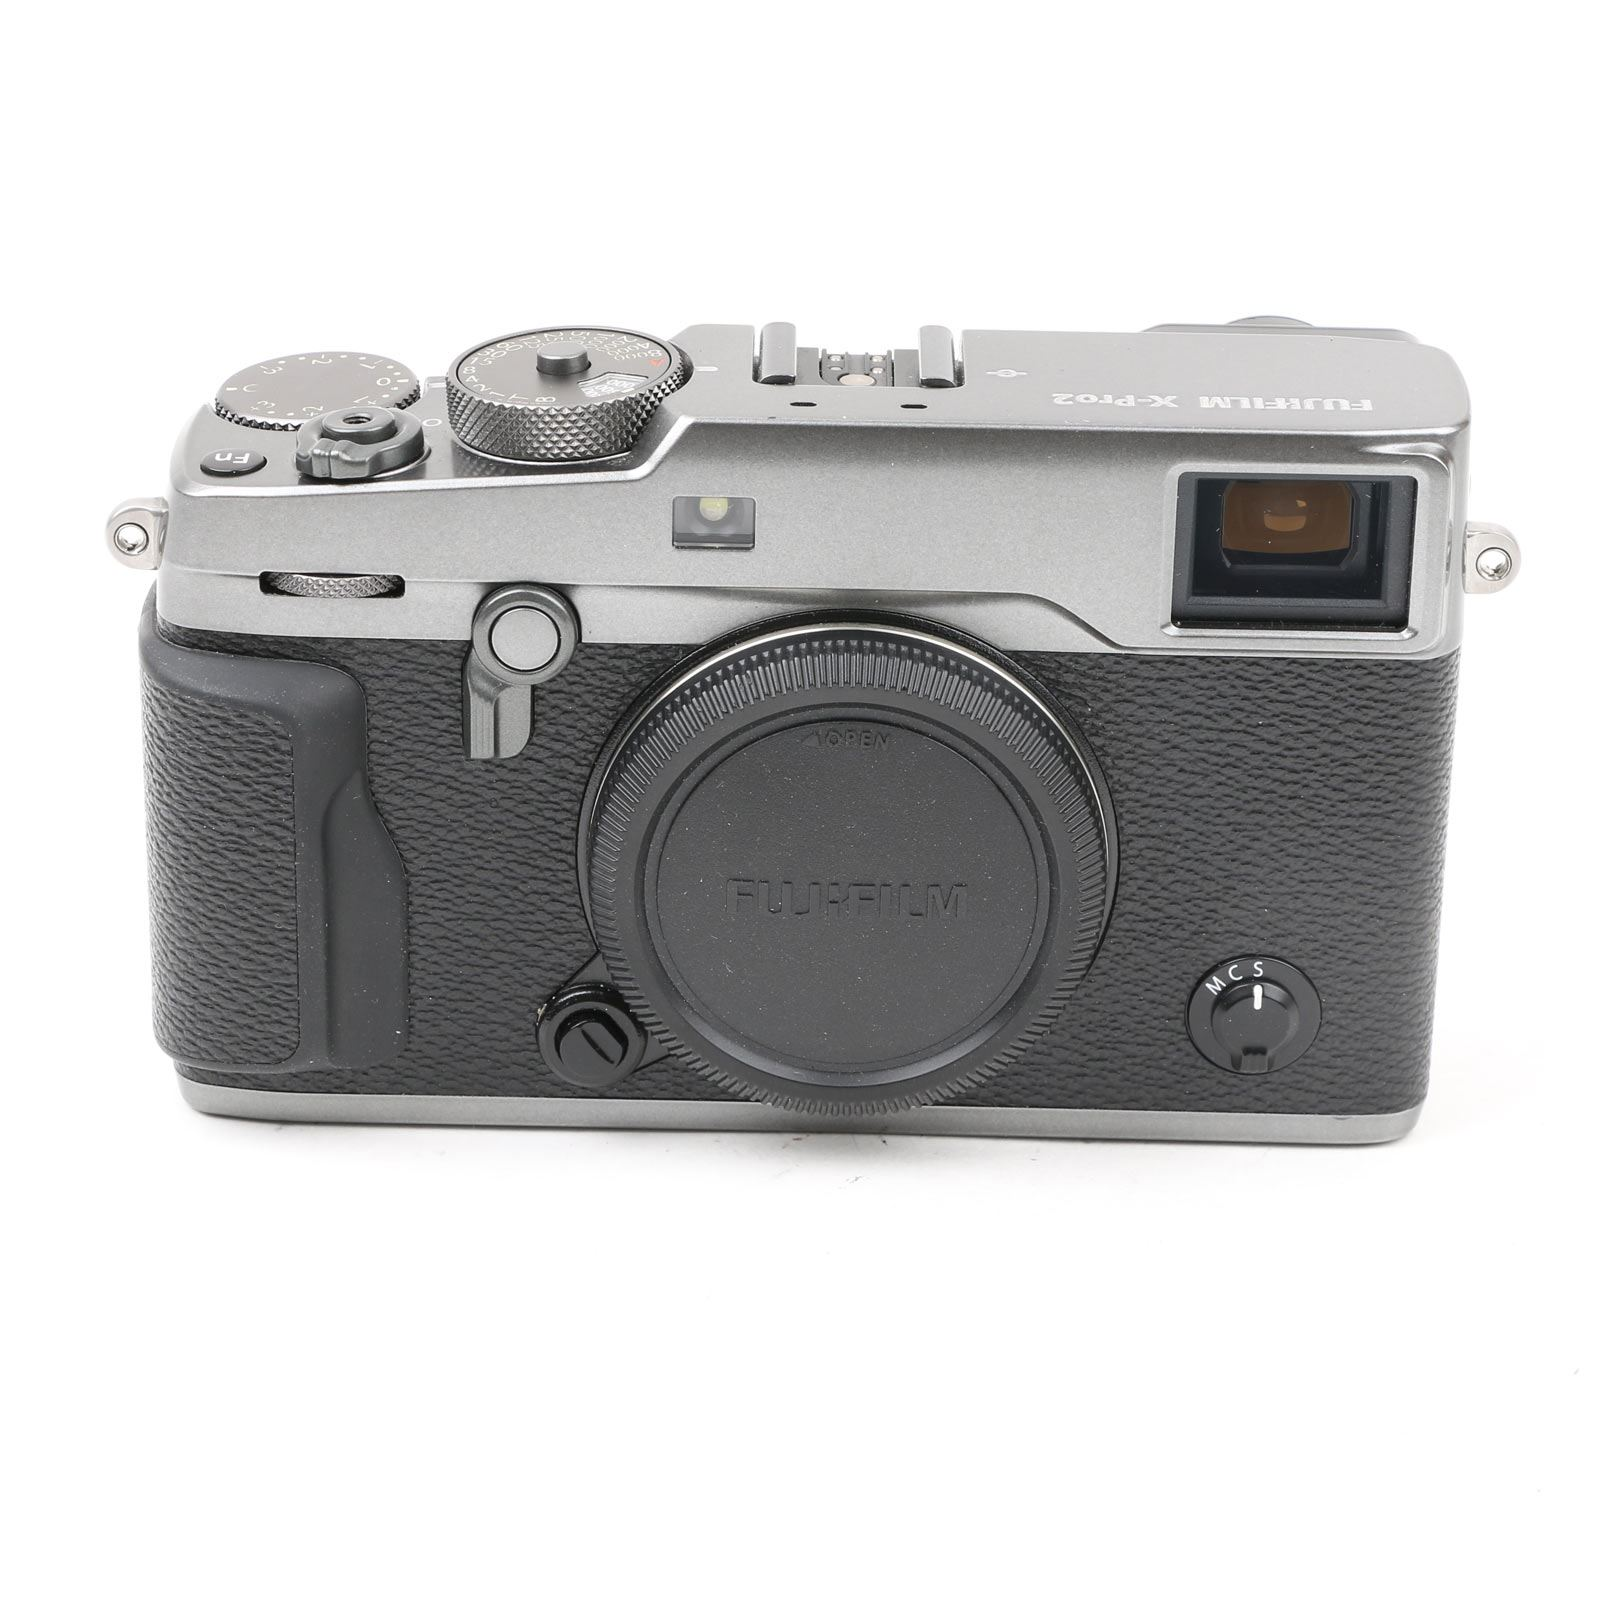 Image of Used Fujifilm X-Pro2 Digital Camera Body with XF23mm F2 Lens - Graphite Silver